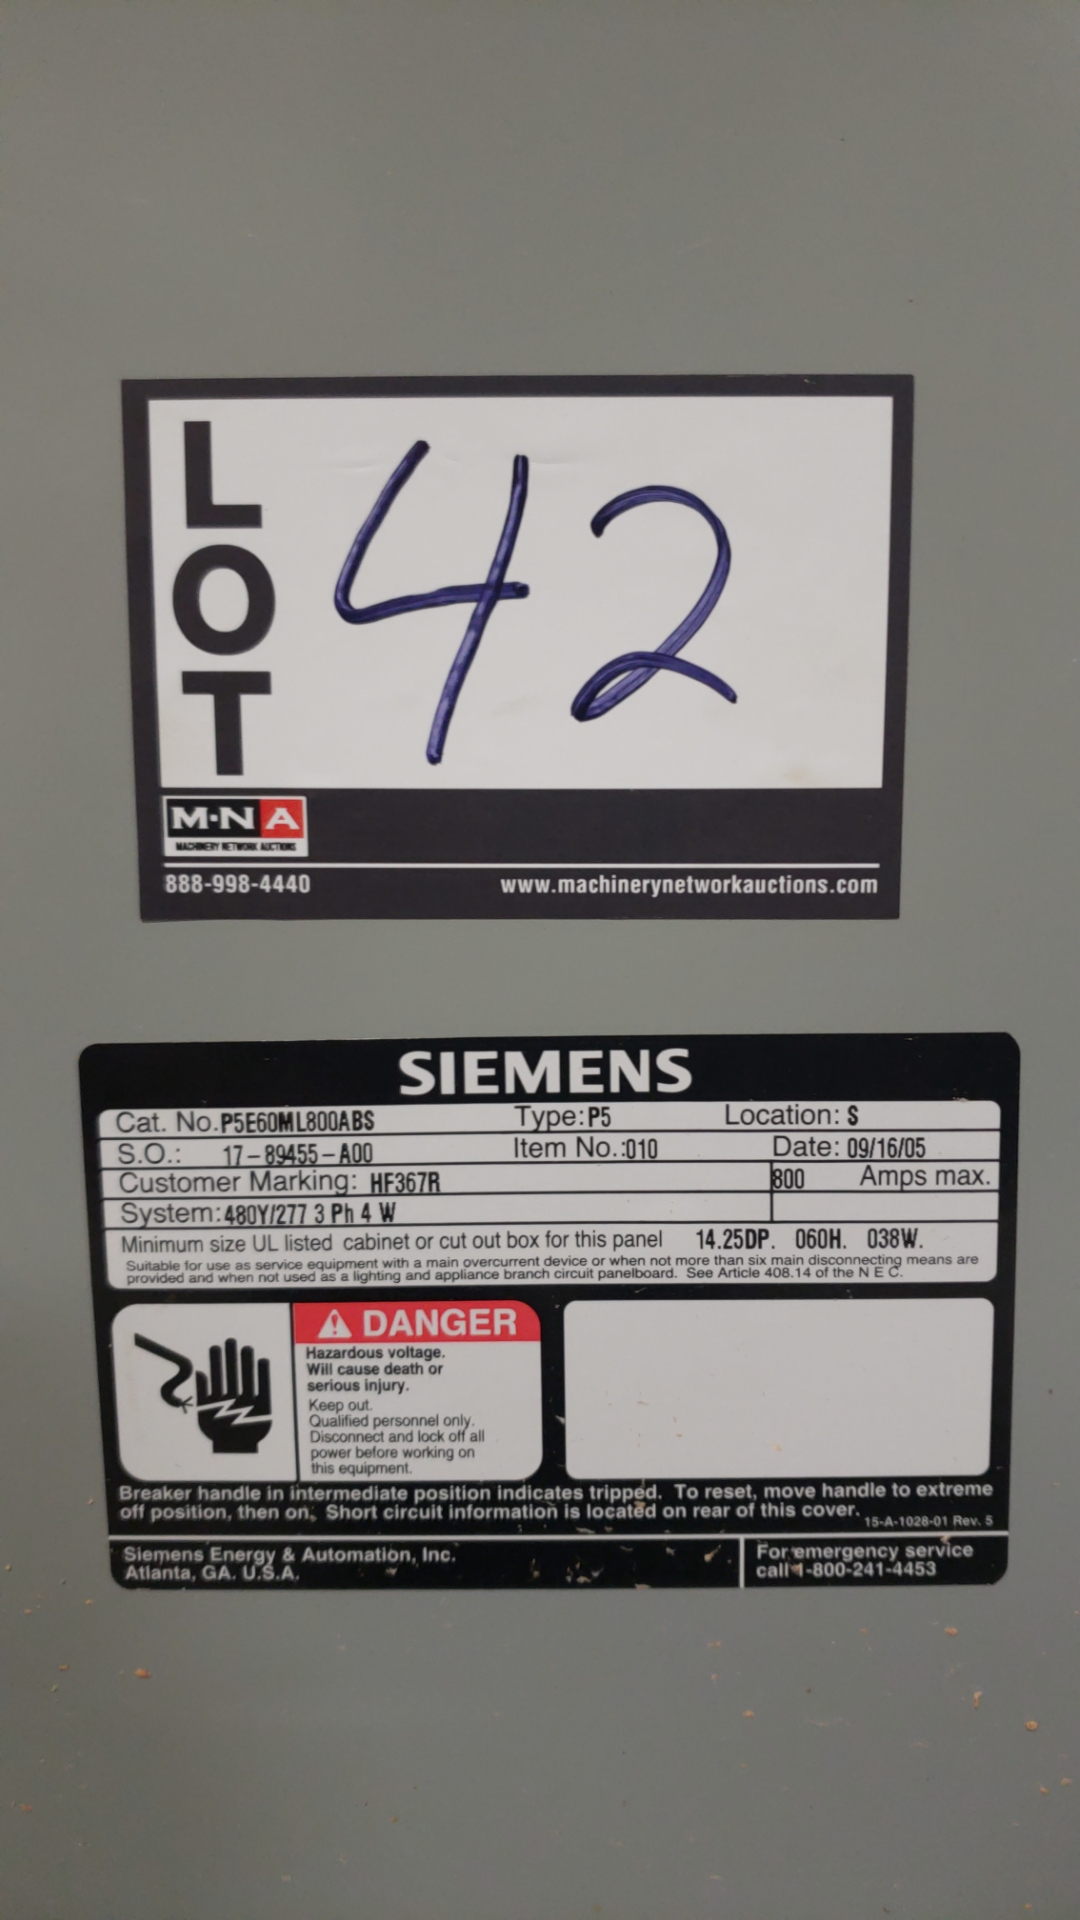 New Siemes 800 AMP 600 volt electric panel - Image 3 of 3